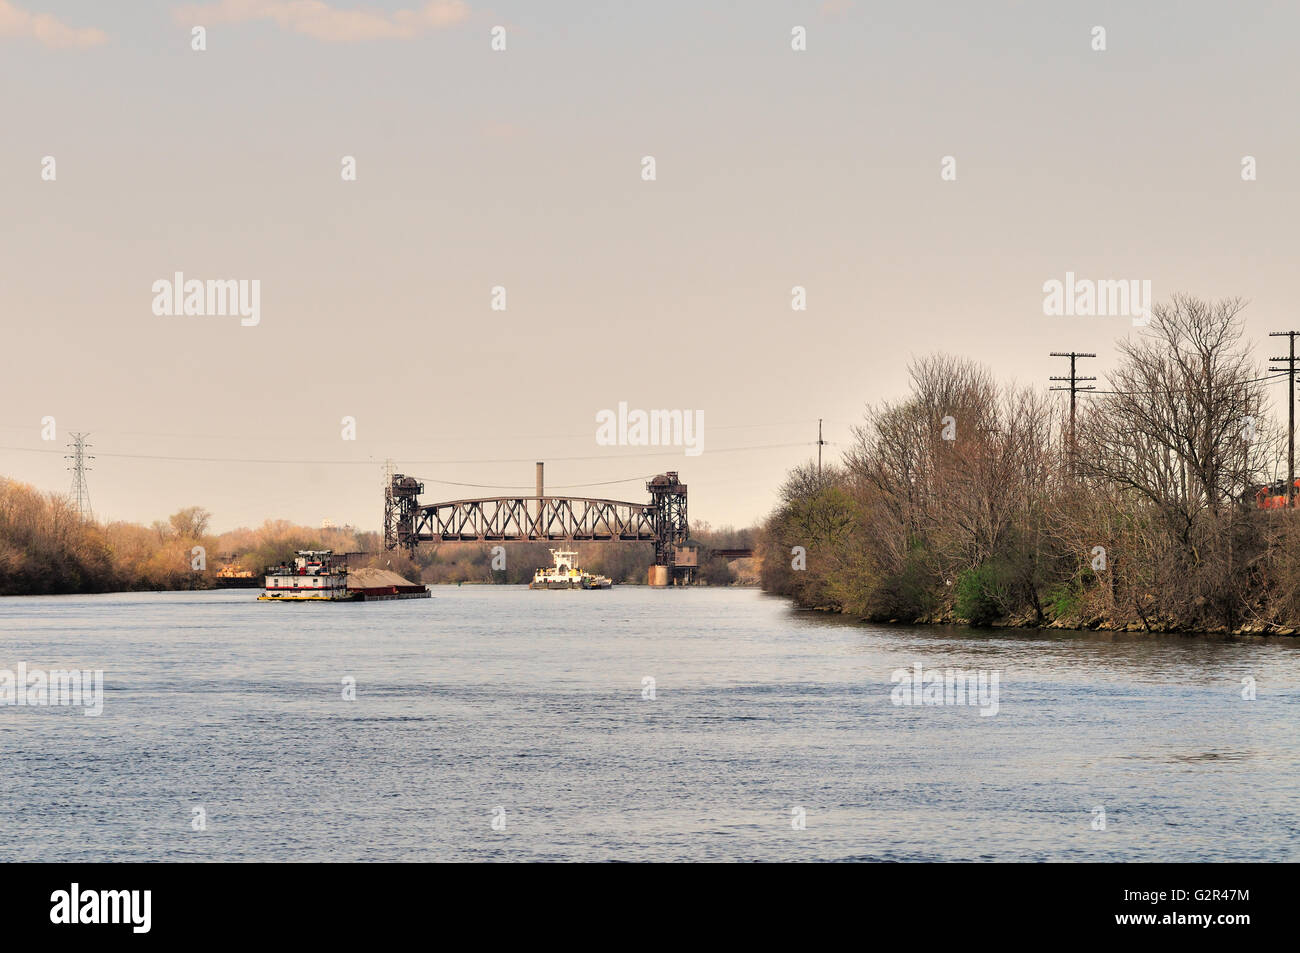 Traffic heading towards a railroad vertical-lift bridge on the Des Plaines River in Joliet, Illinois. - Stock Image